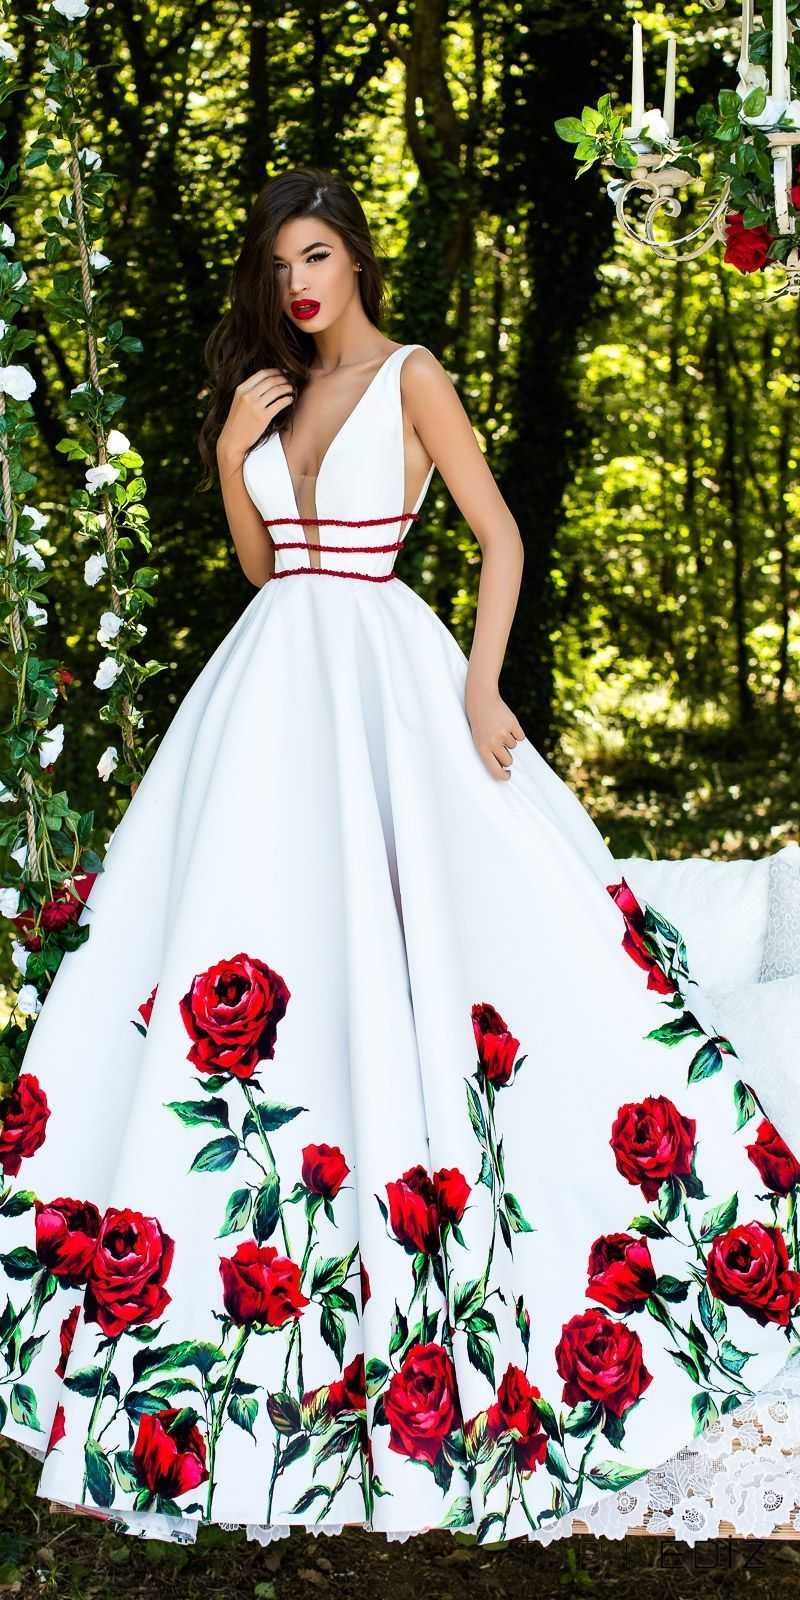 white dress with red rose print - Google Search